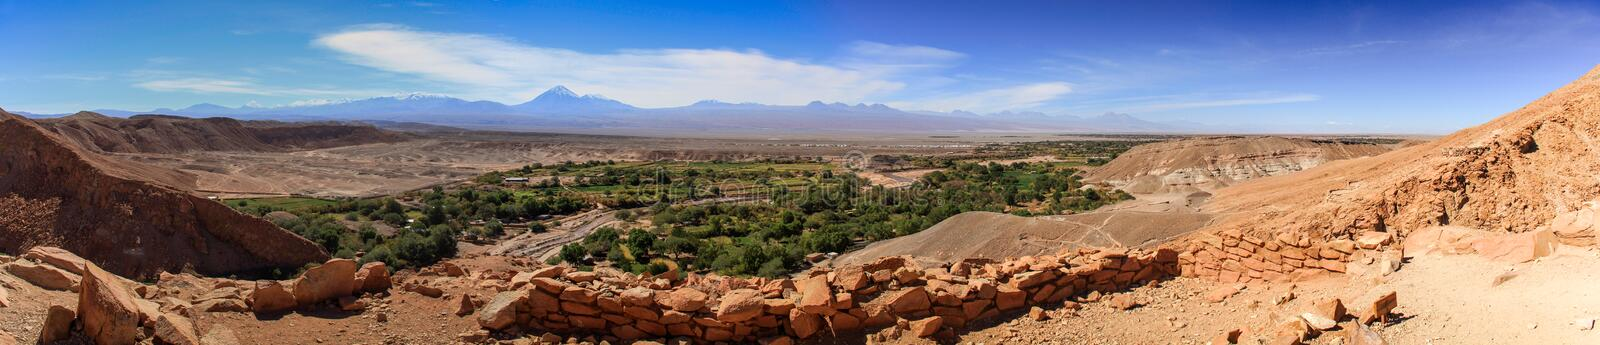 Panorama View from Pukará de Quitor ruins over a valley below, Atacama Desert, Northern Chile stock photo